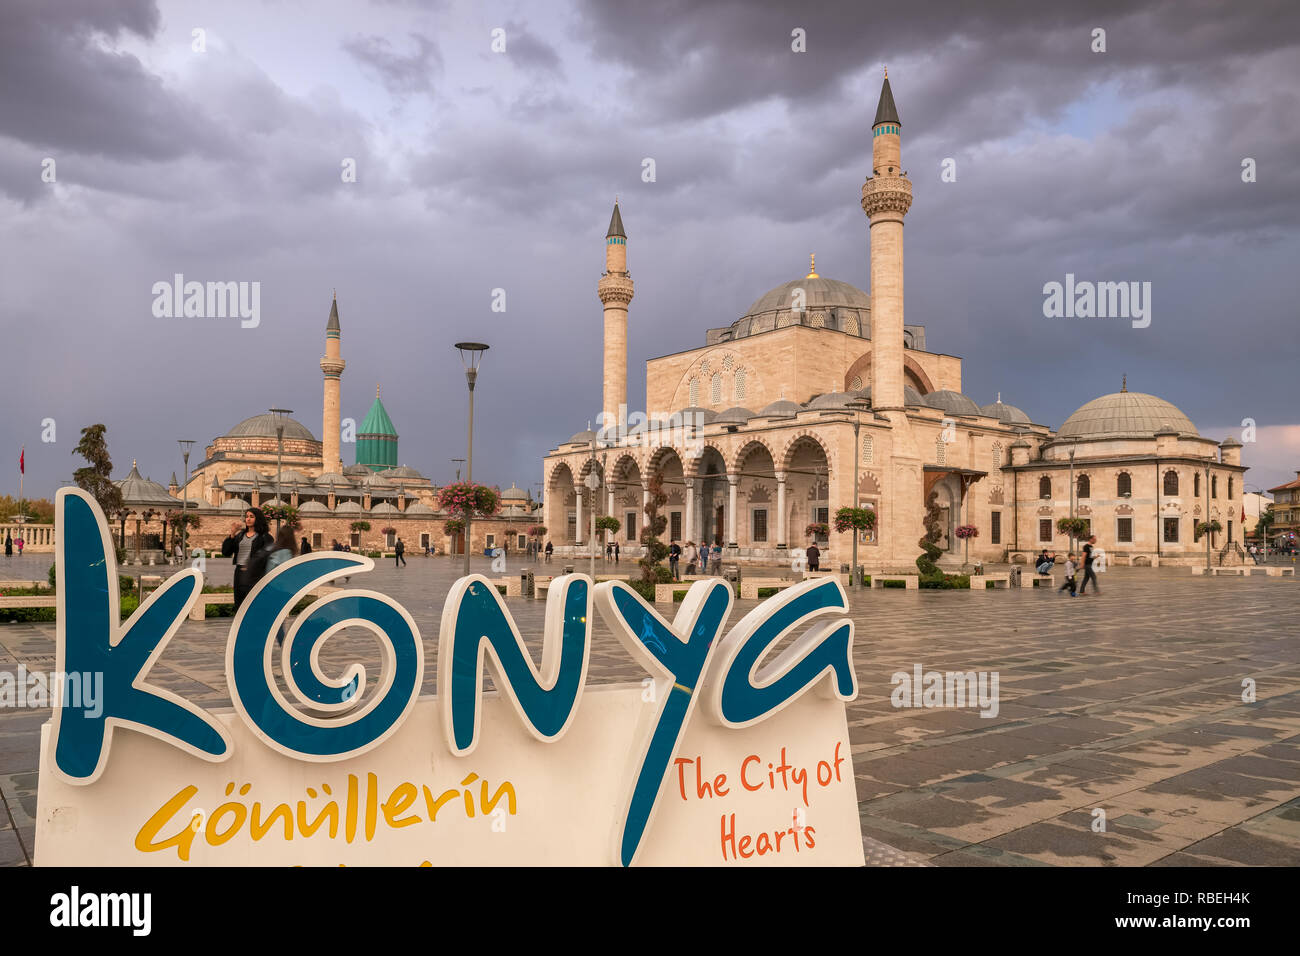 Konya, Turkey - October 20, 2018: The central square of the old town with the Mevlana Museum on the background and Selimiye Mosque - Stock Image